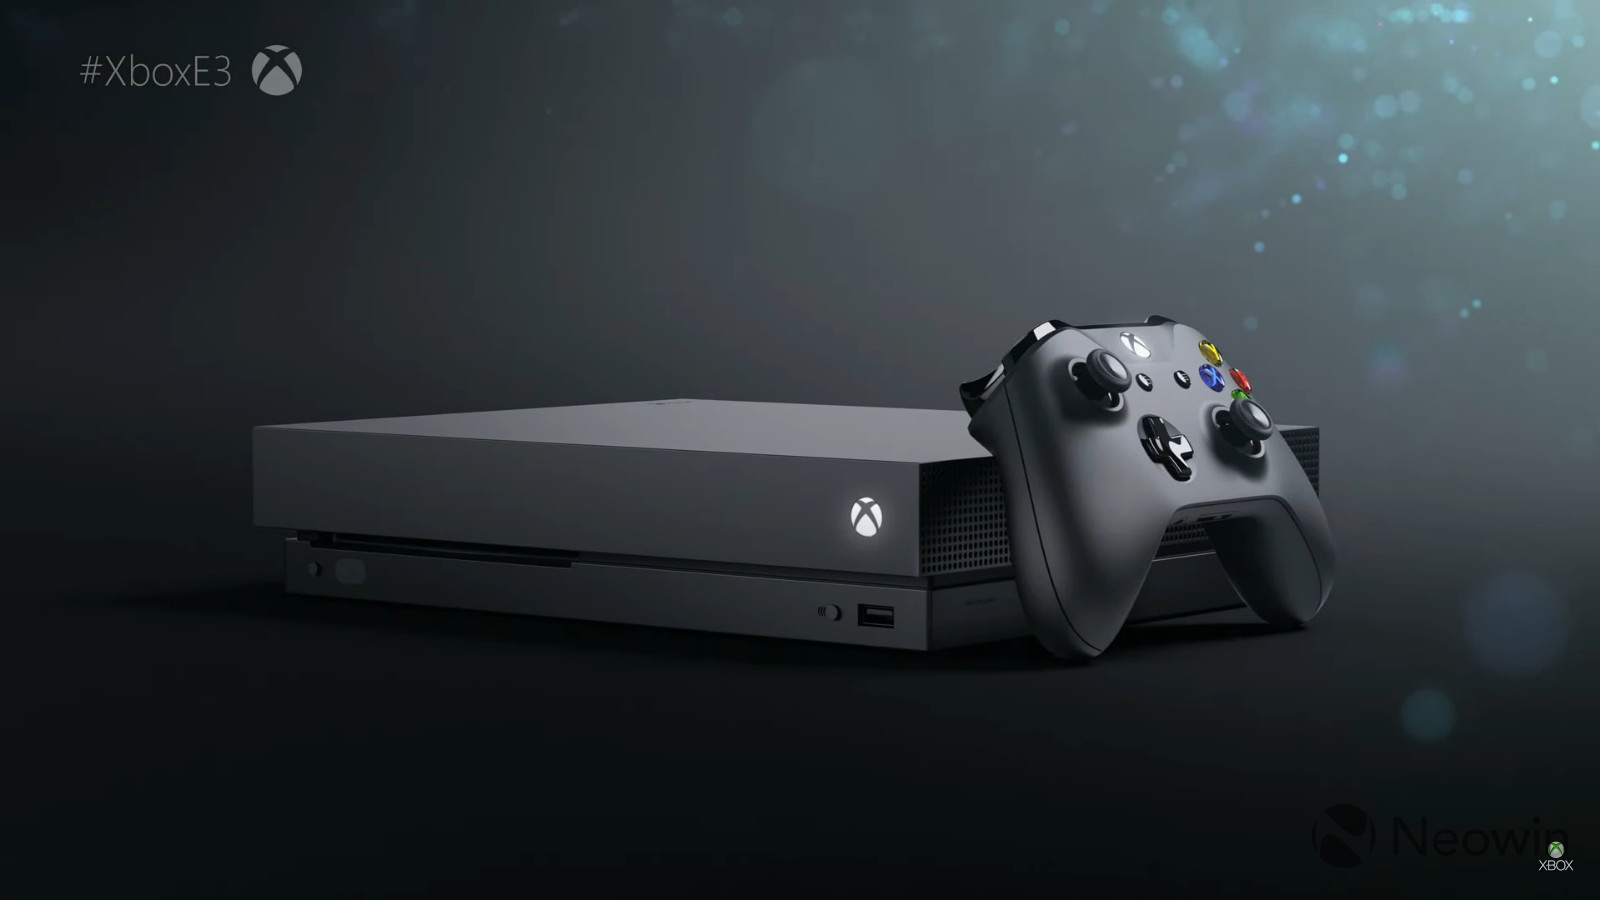 Sony can't compete with the Xbox One X